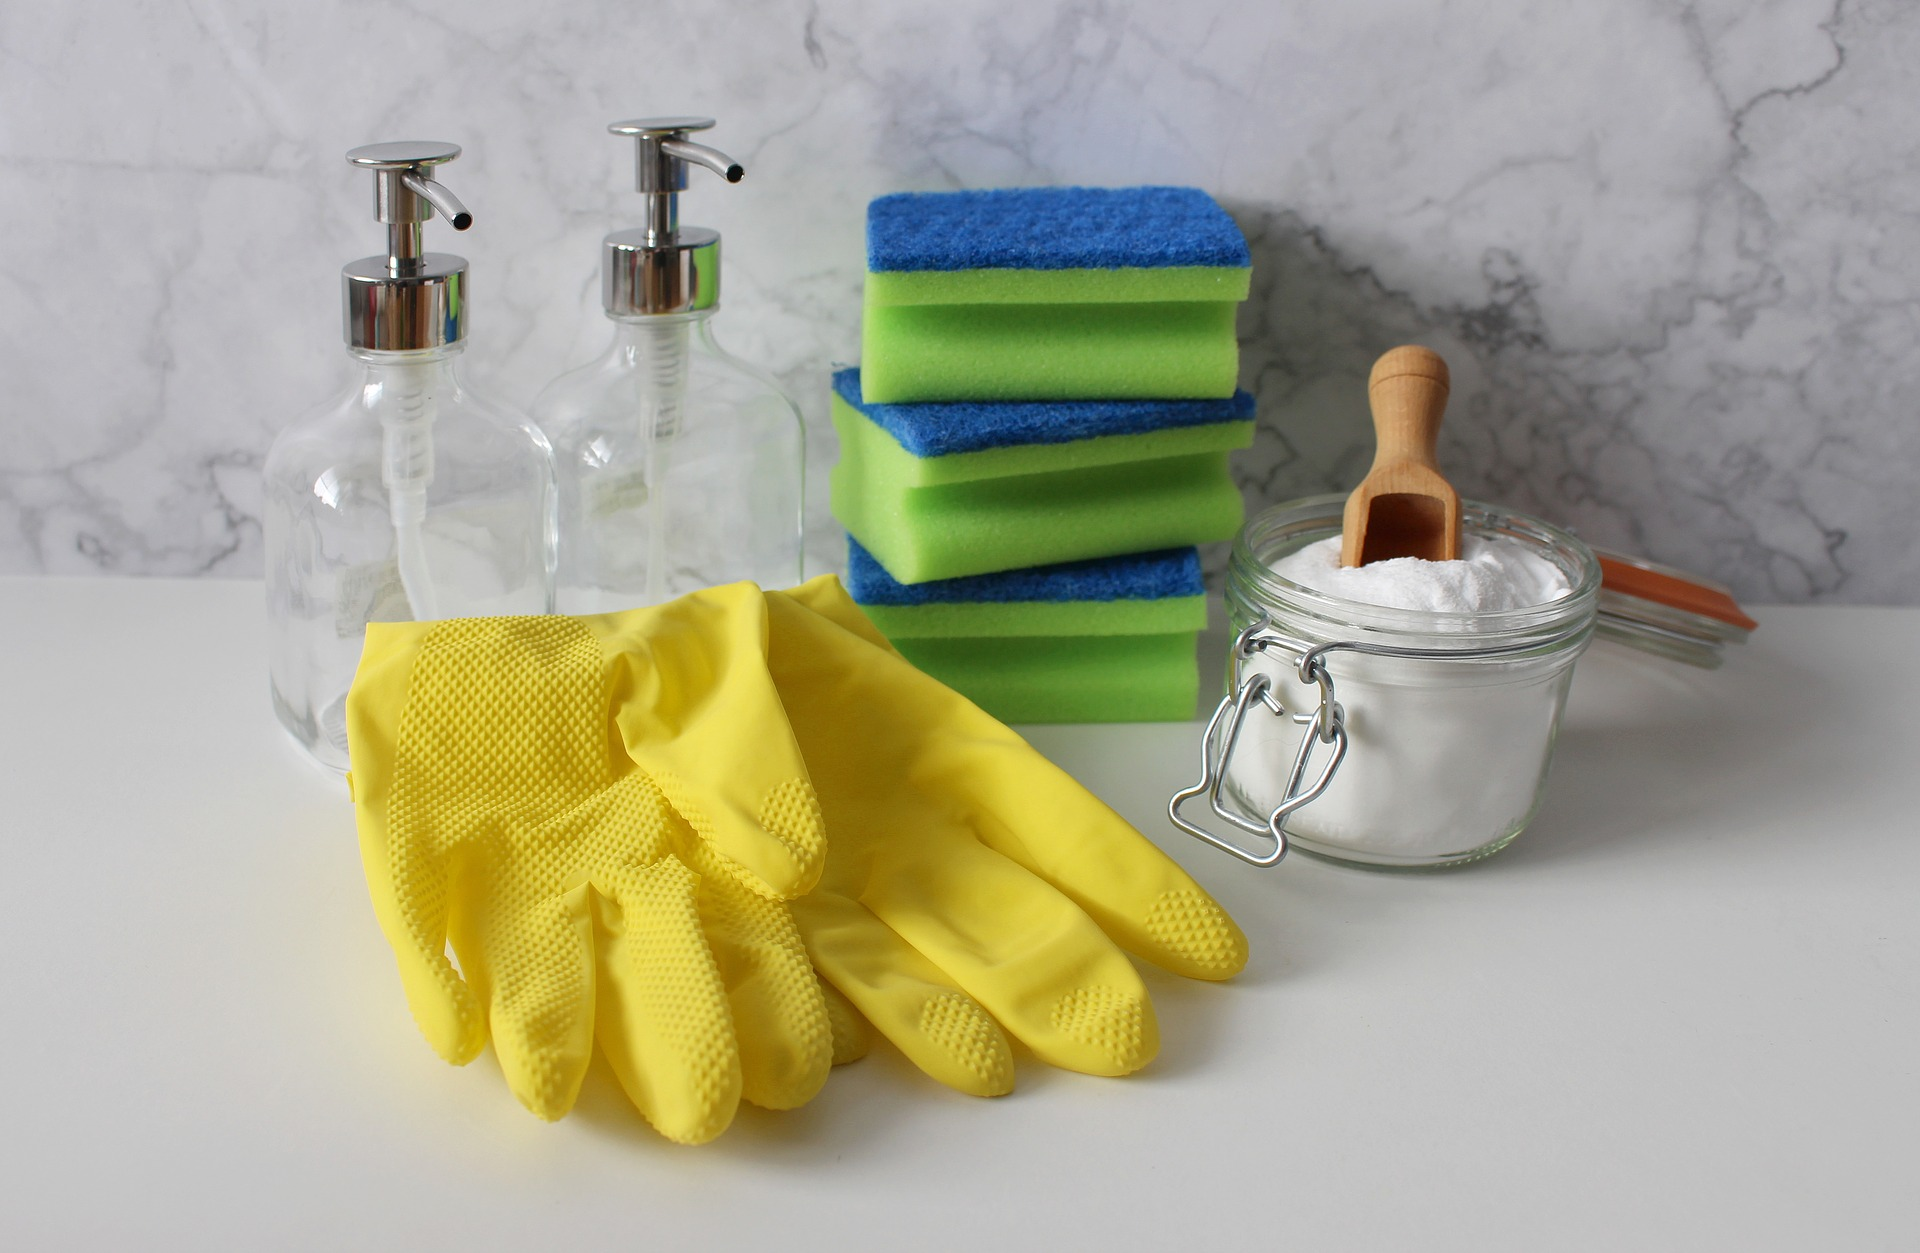 cleaning rubber gloves